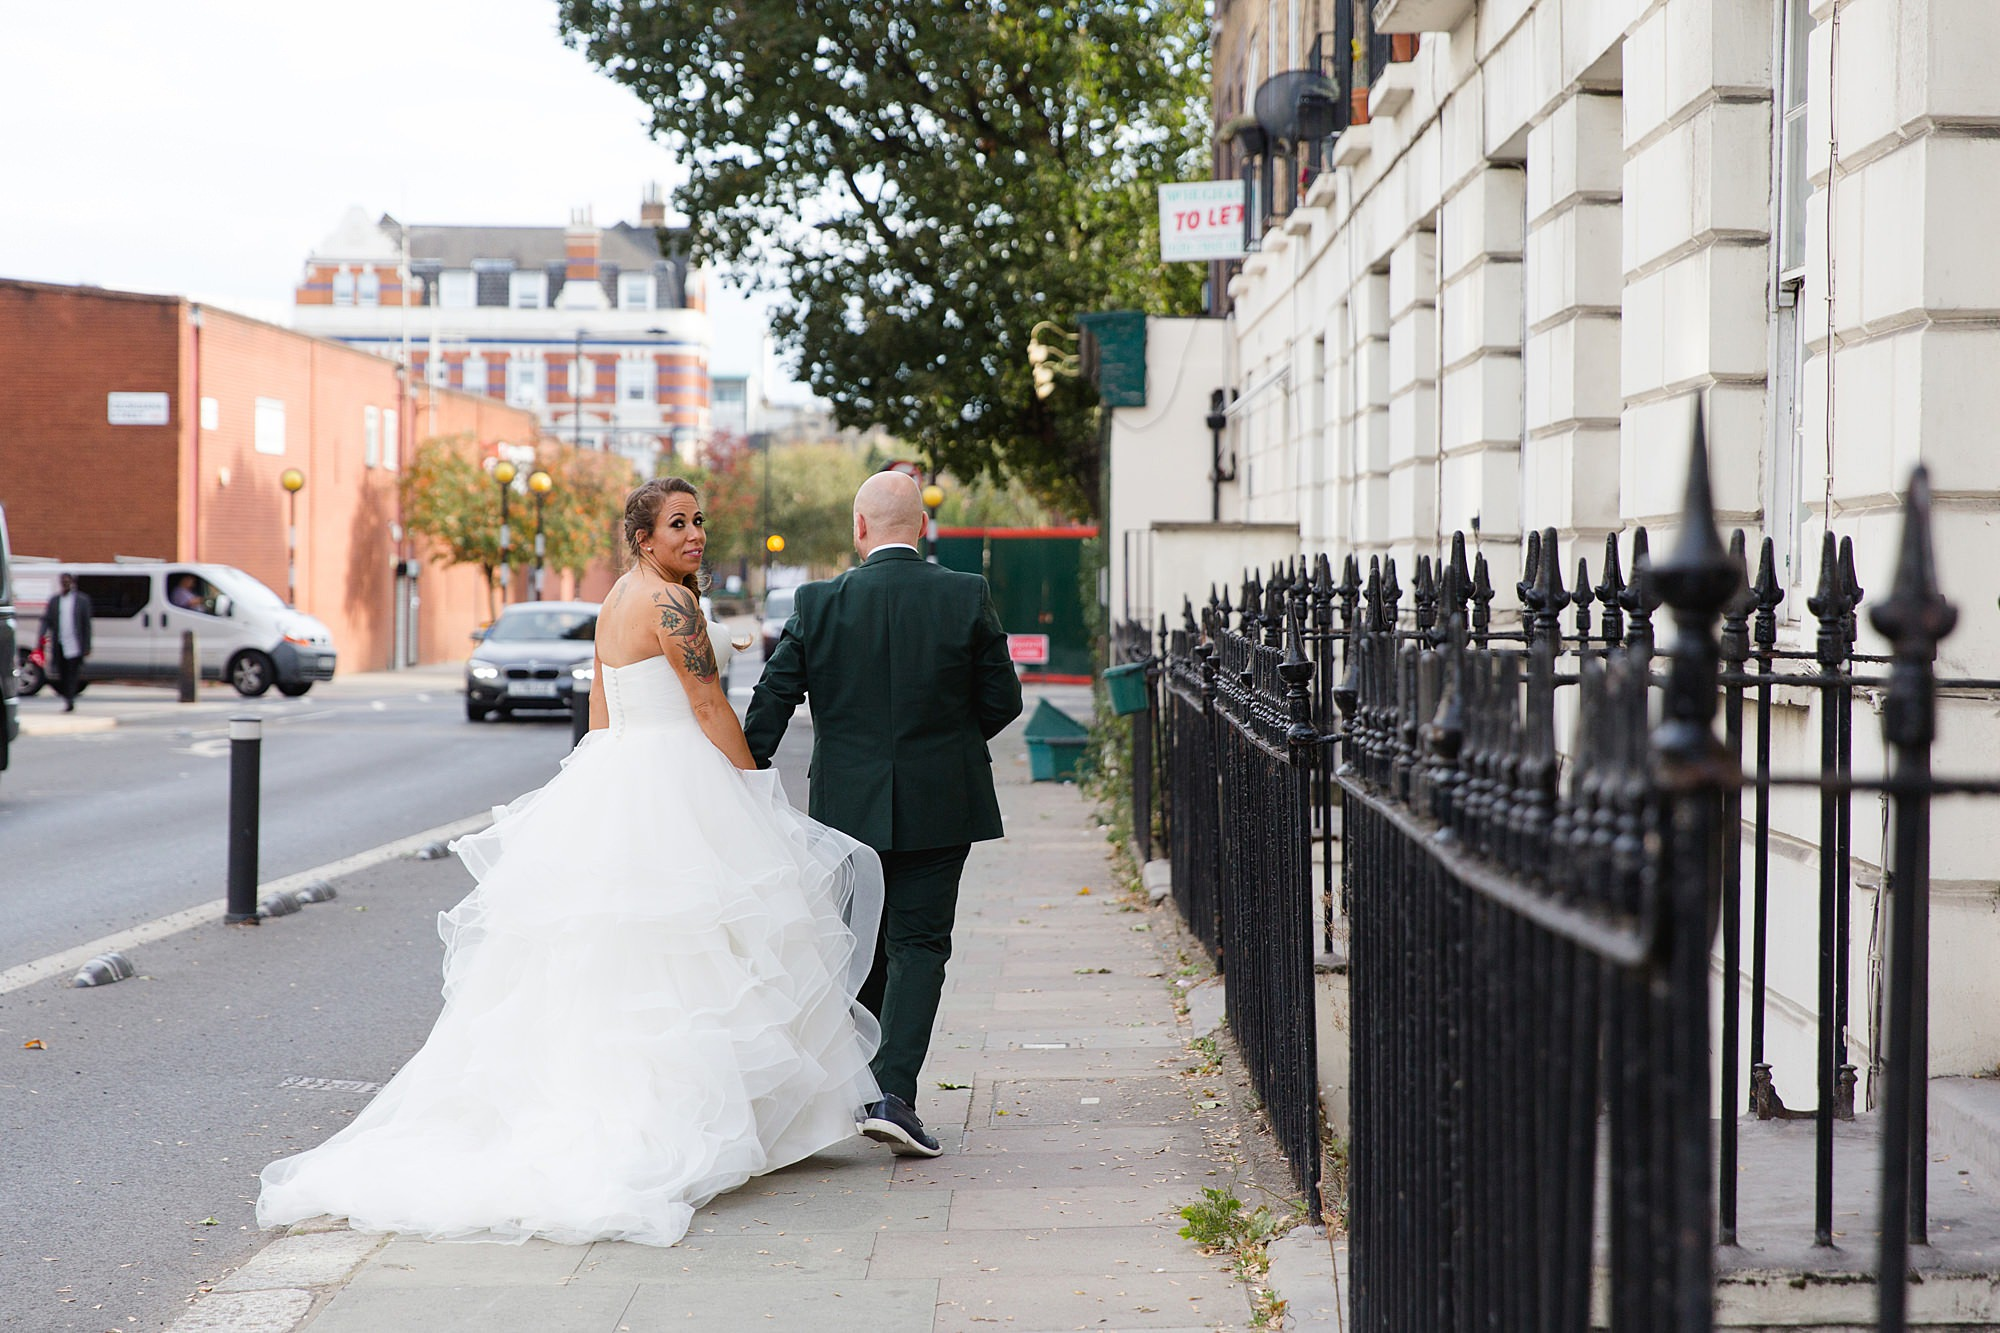 Prince albert camden wedding bride and groom walking on path